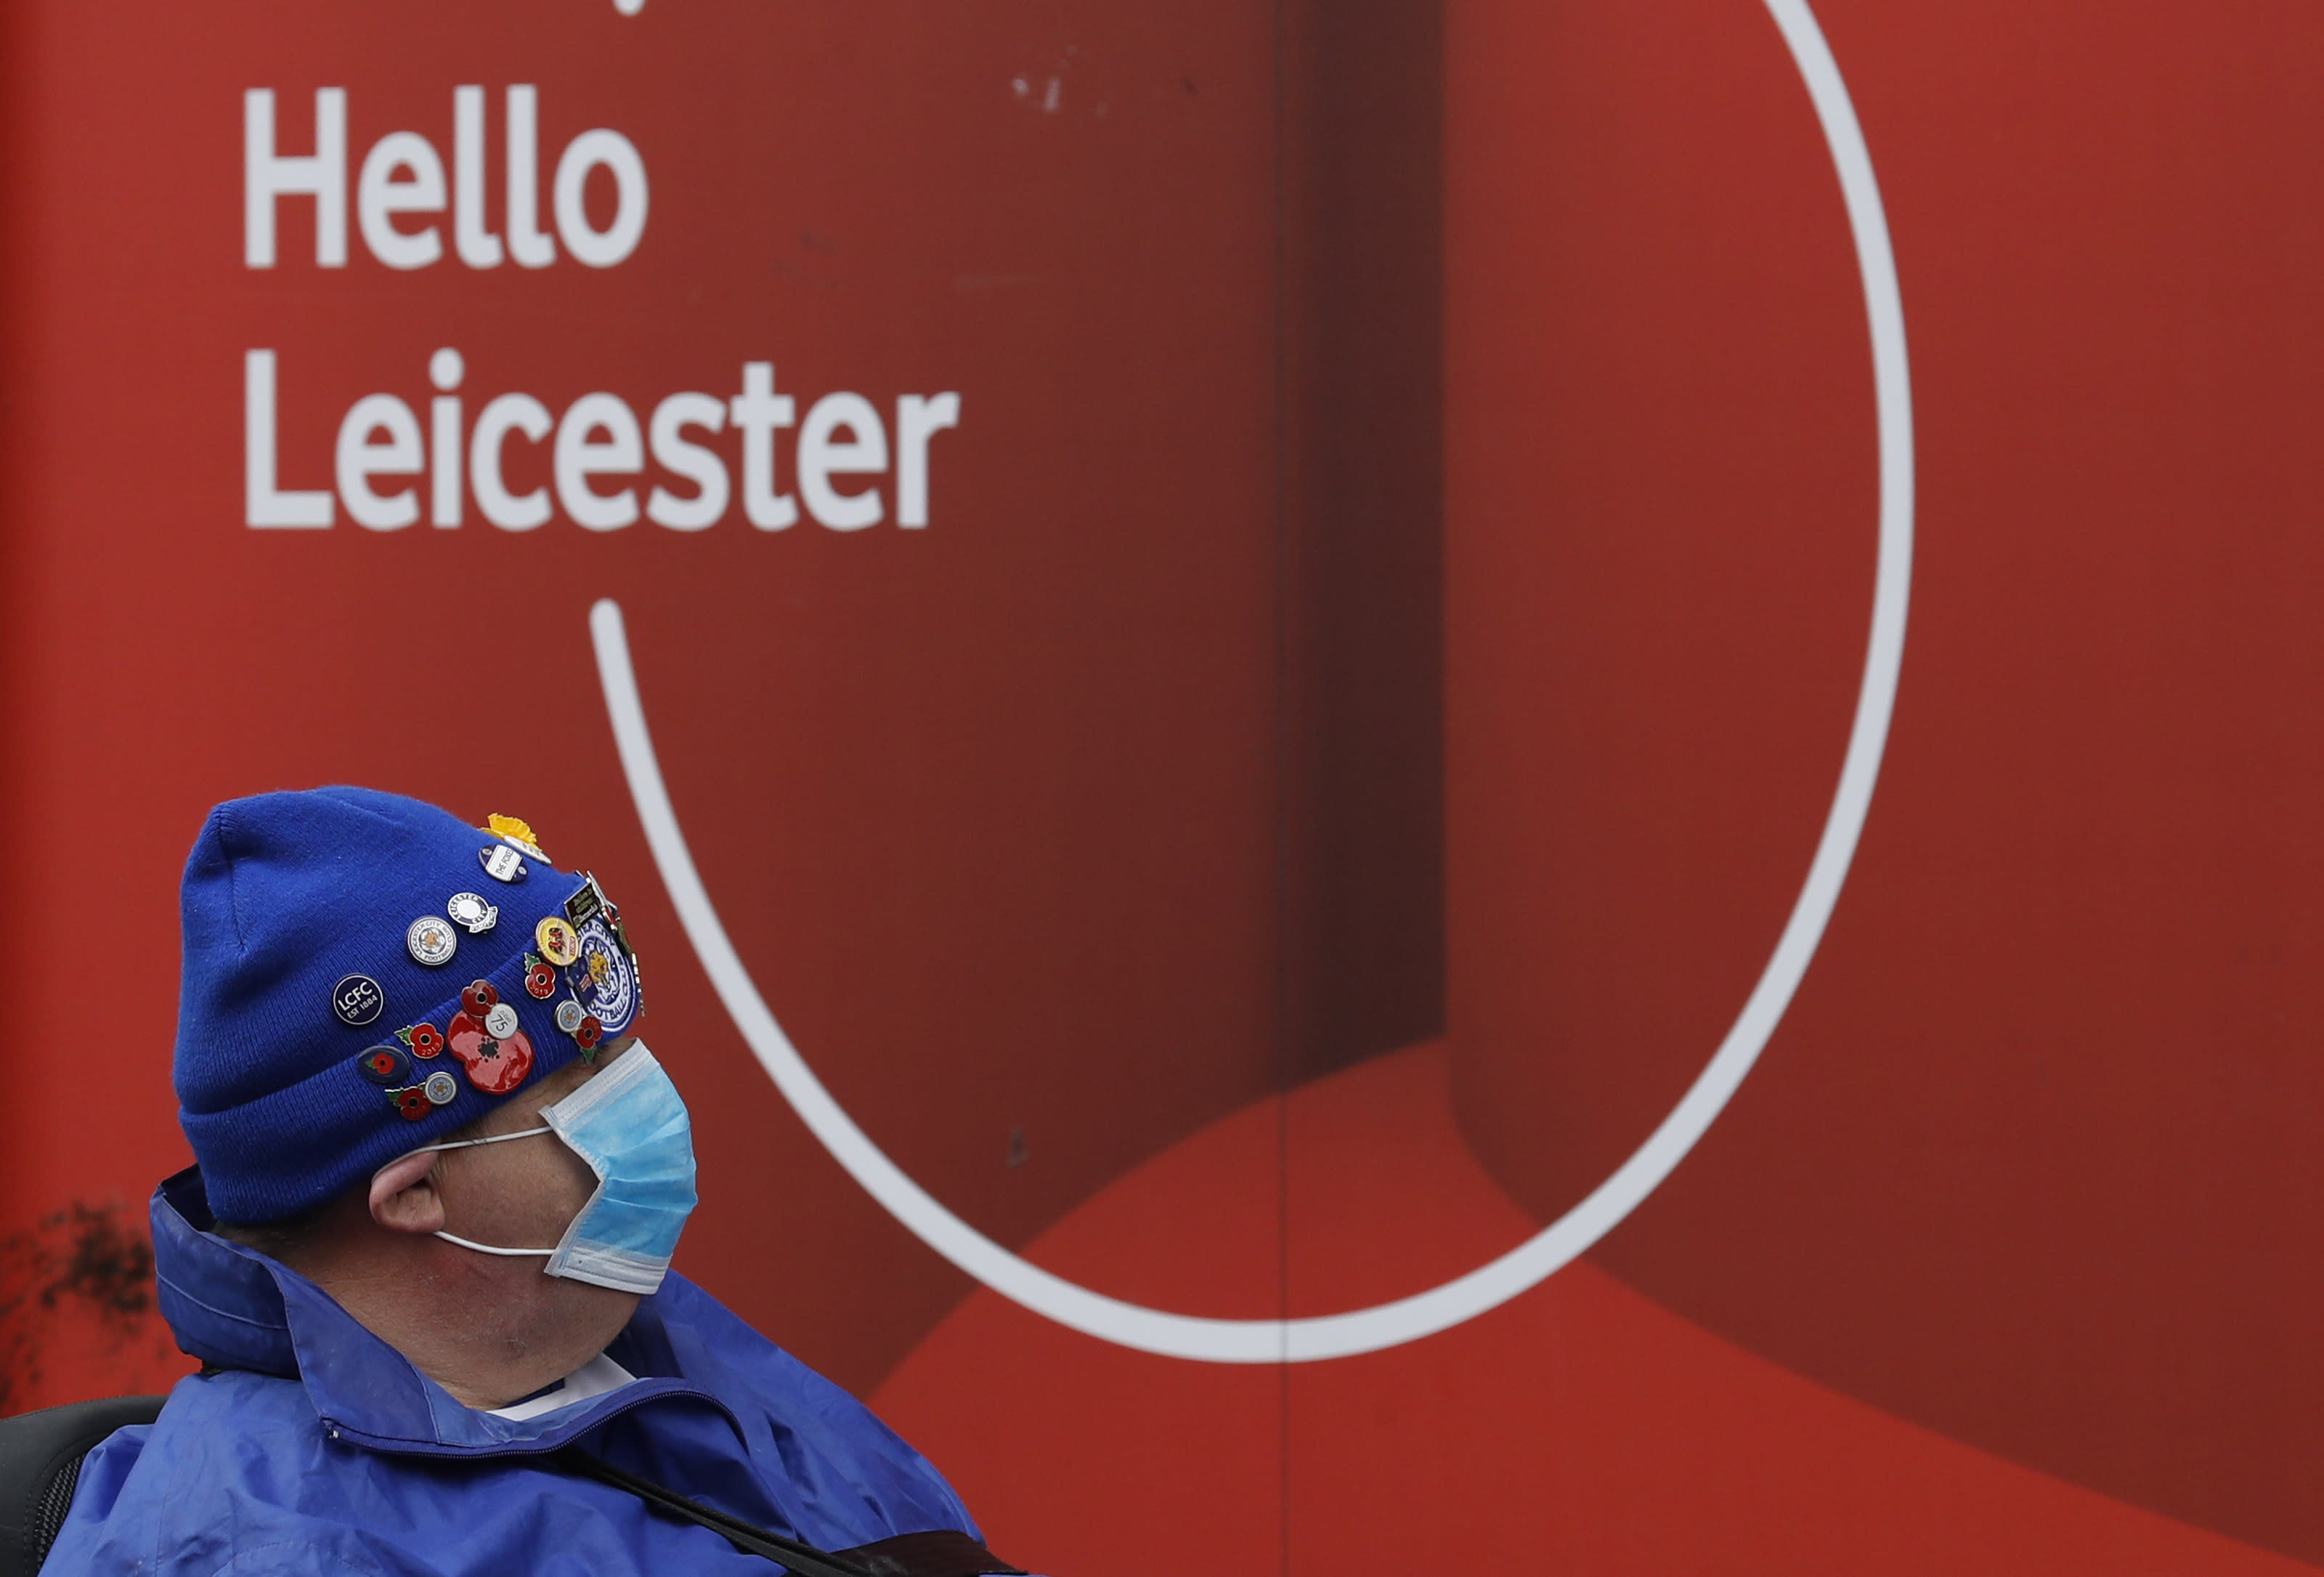 Leicester coronavirus outbreak driven by spike in cases among younger people, report finds